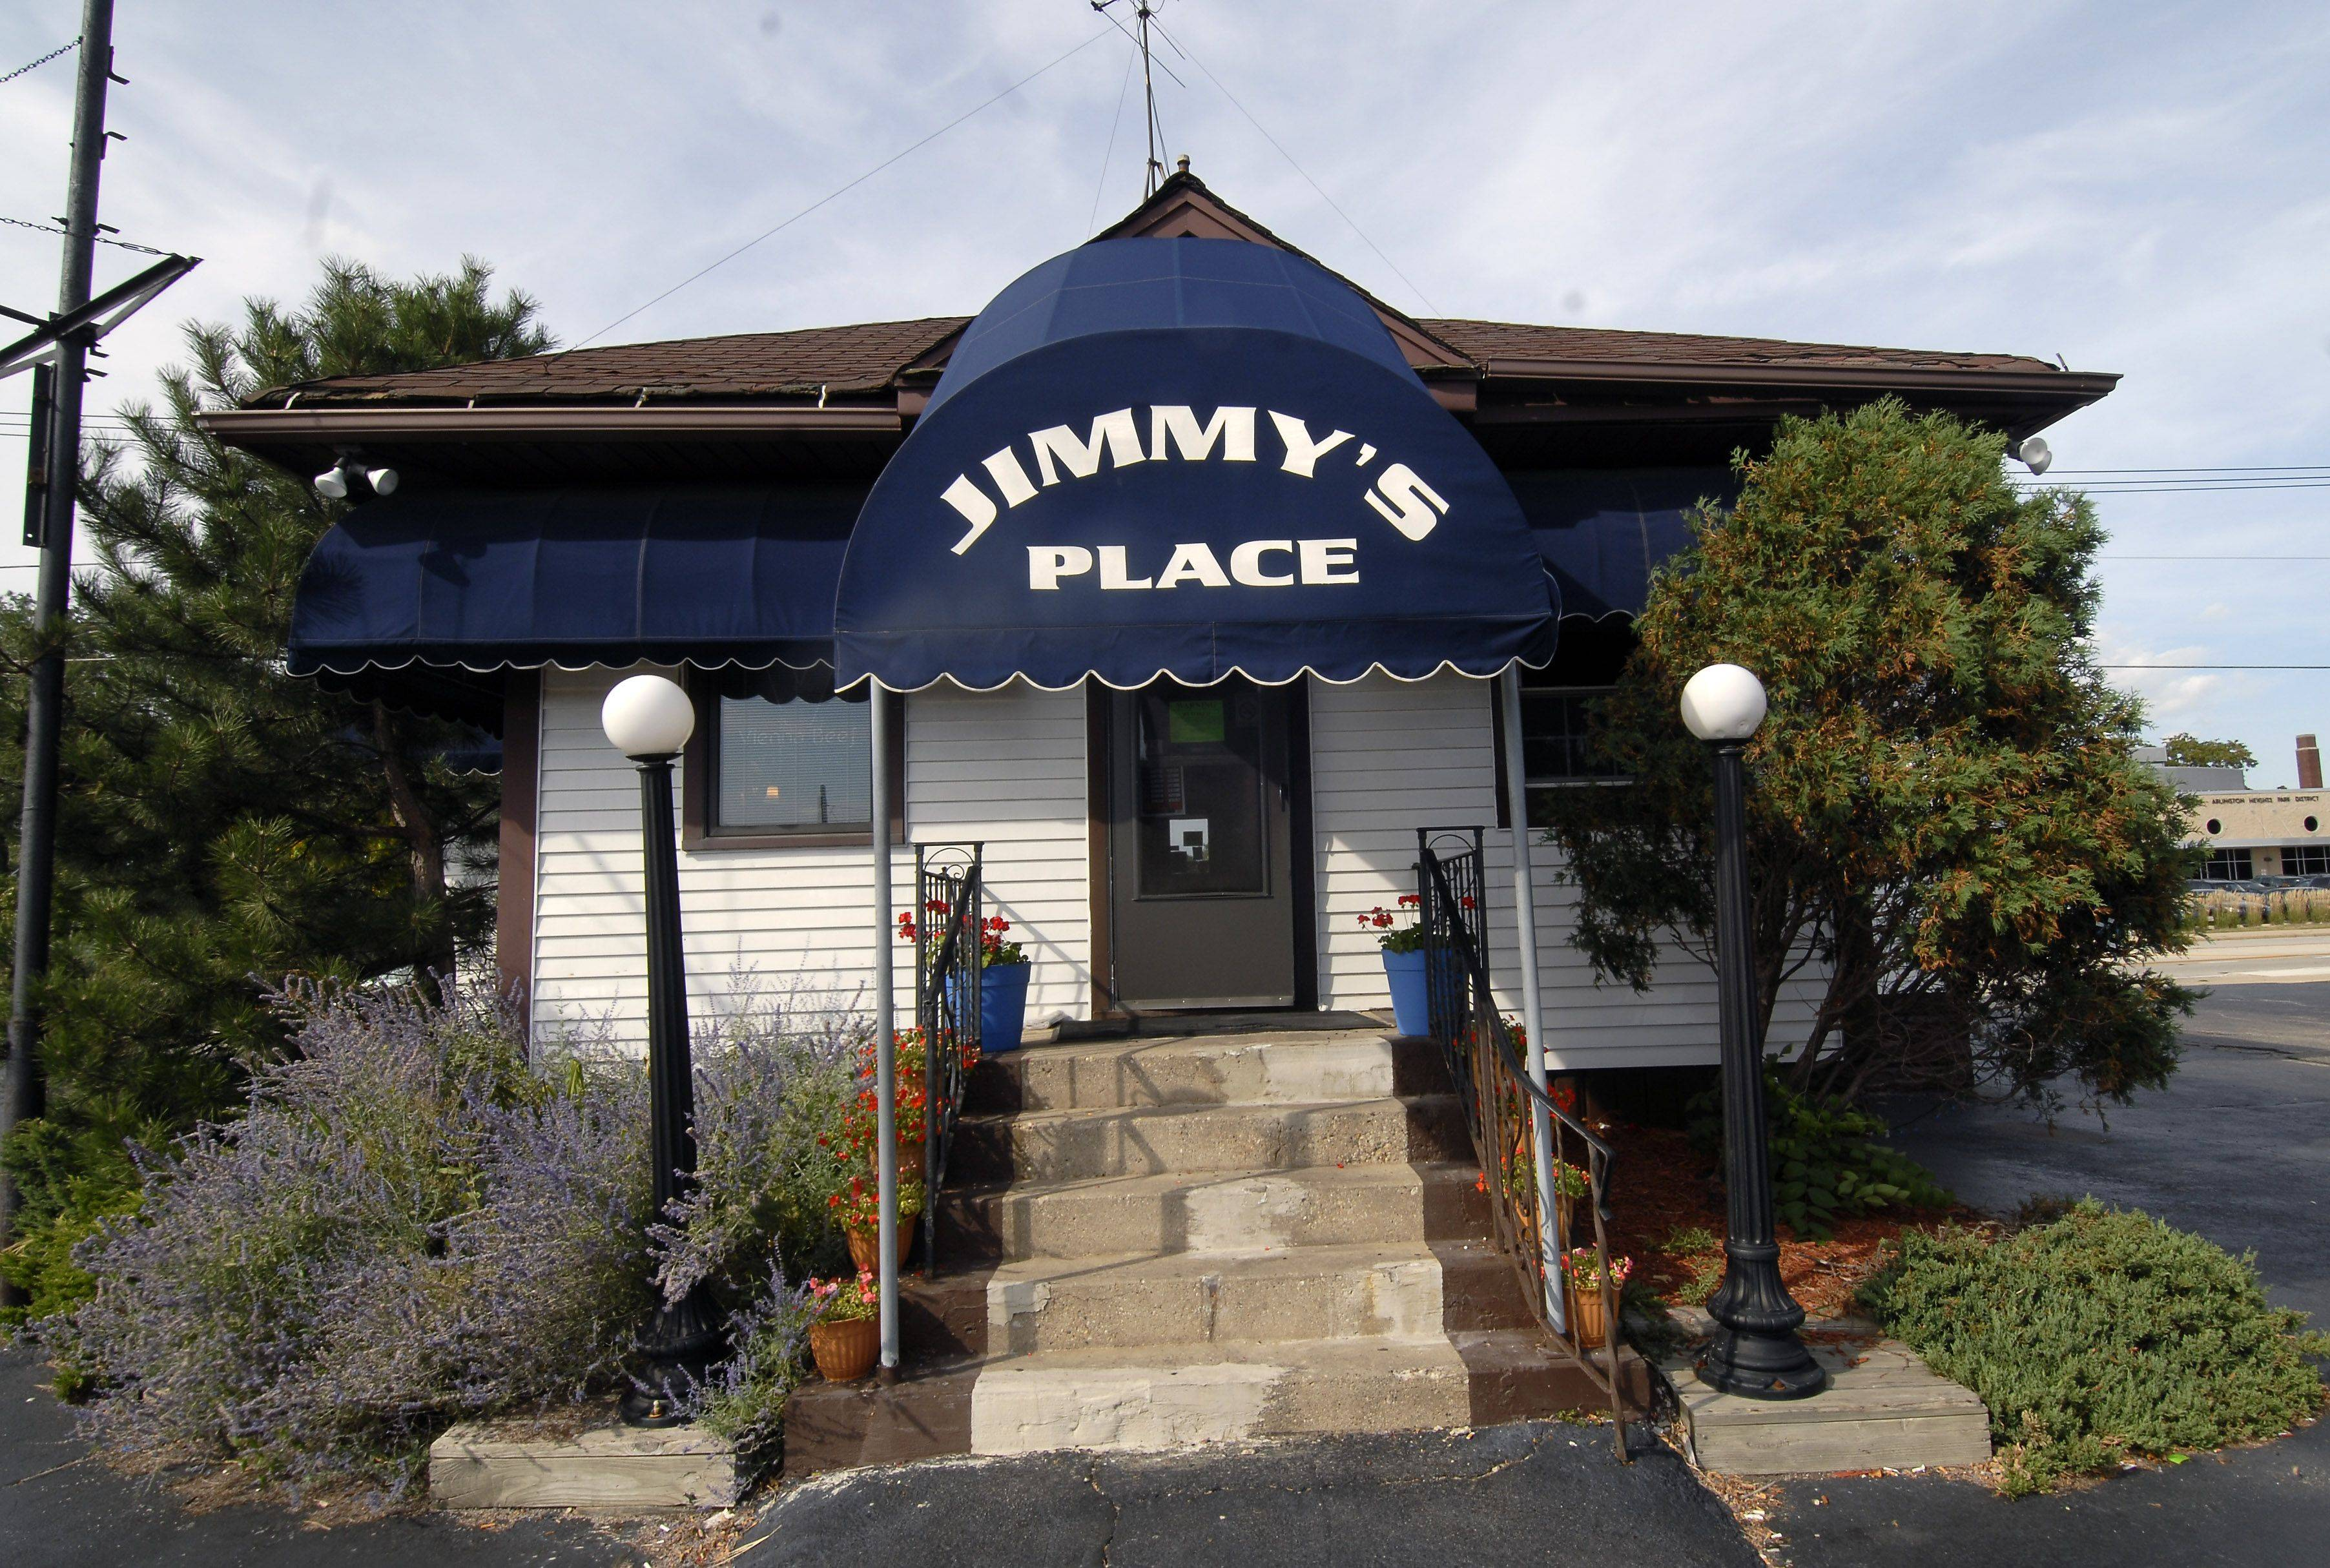 Jimmy's Place, a long time favorite spot for burgers and cold beer in Arlington Heights, has been closed.